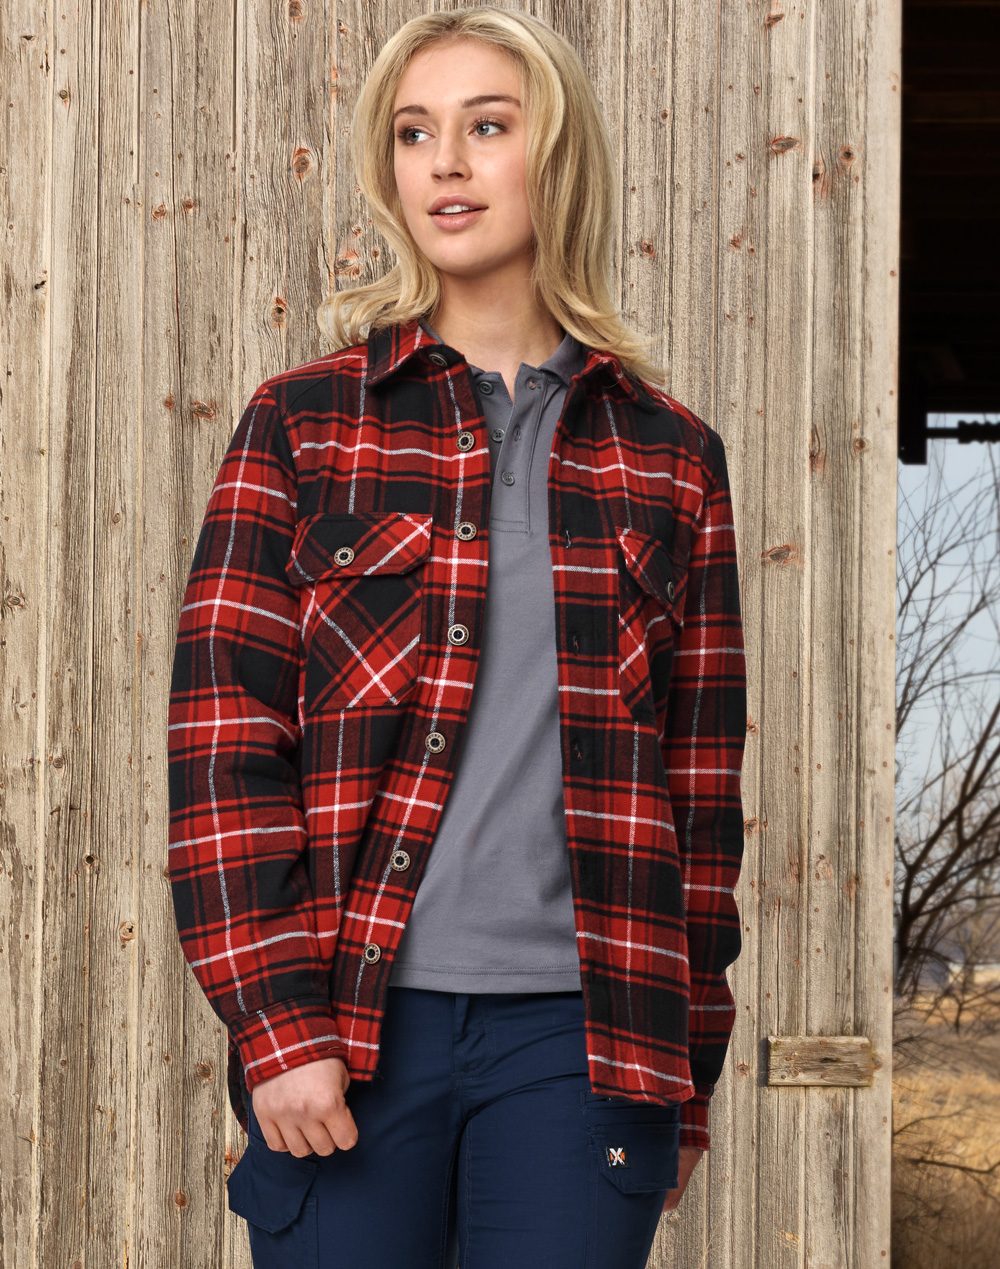 WT07 UNISEX QUILTED FLANNEL SHIRT-STYLE JACKET